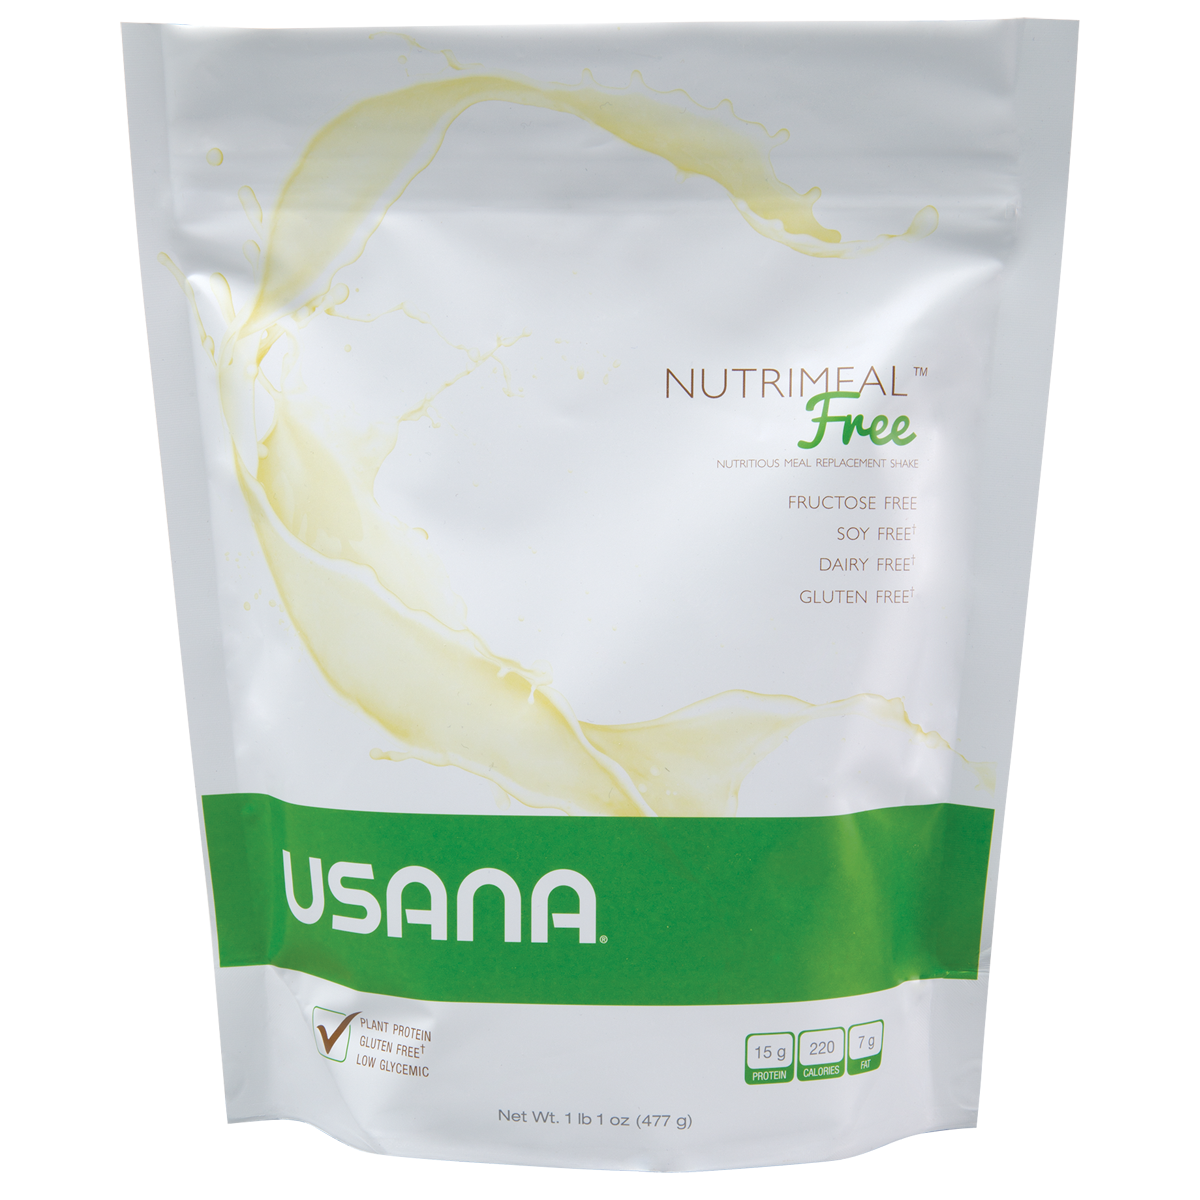 USANA® Nutrimeal™ Free Meal Replacement